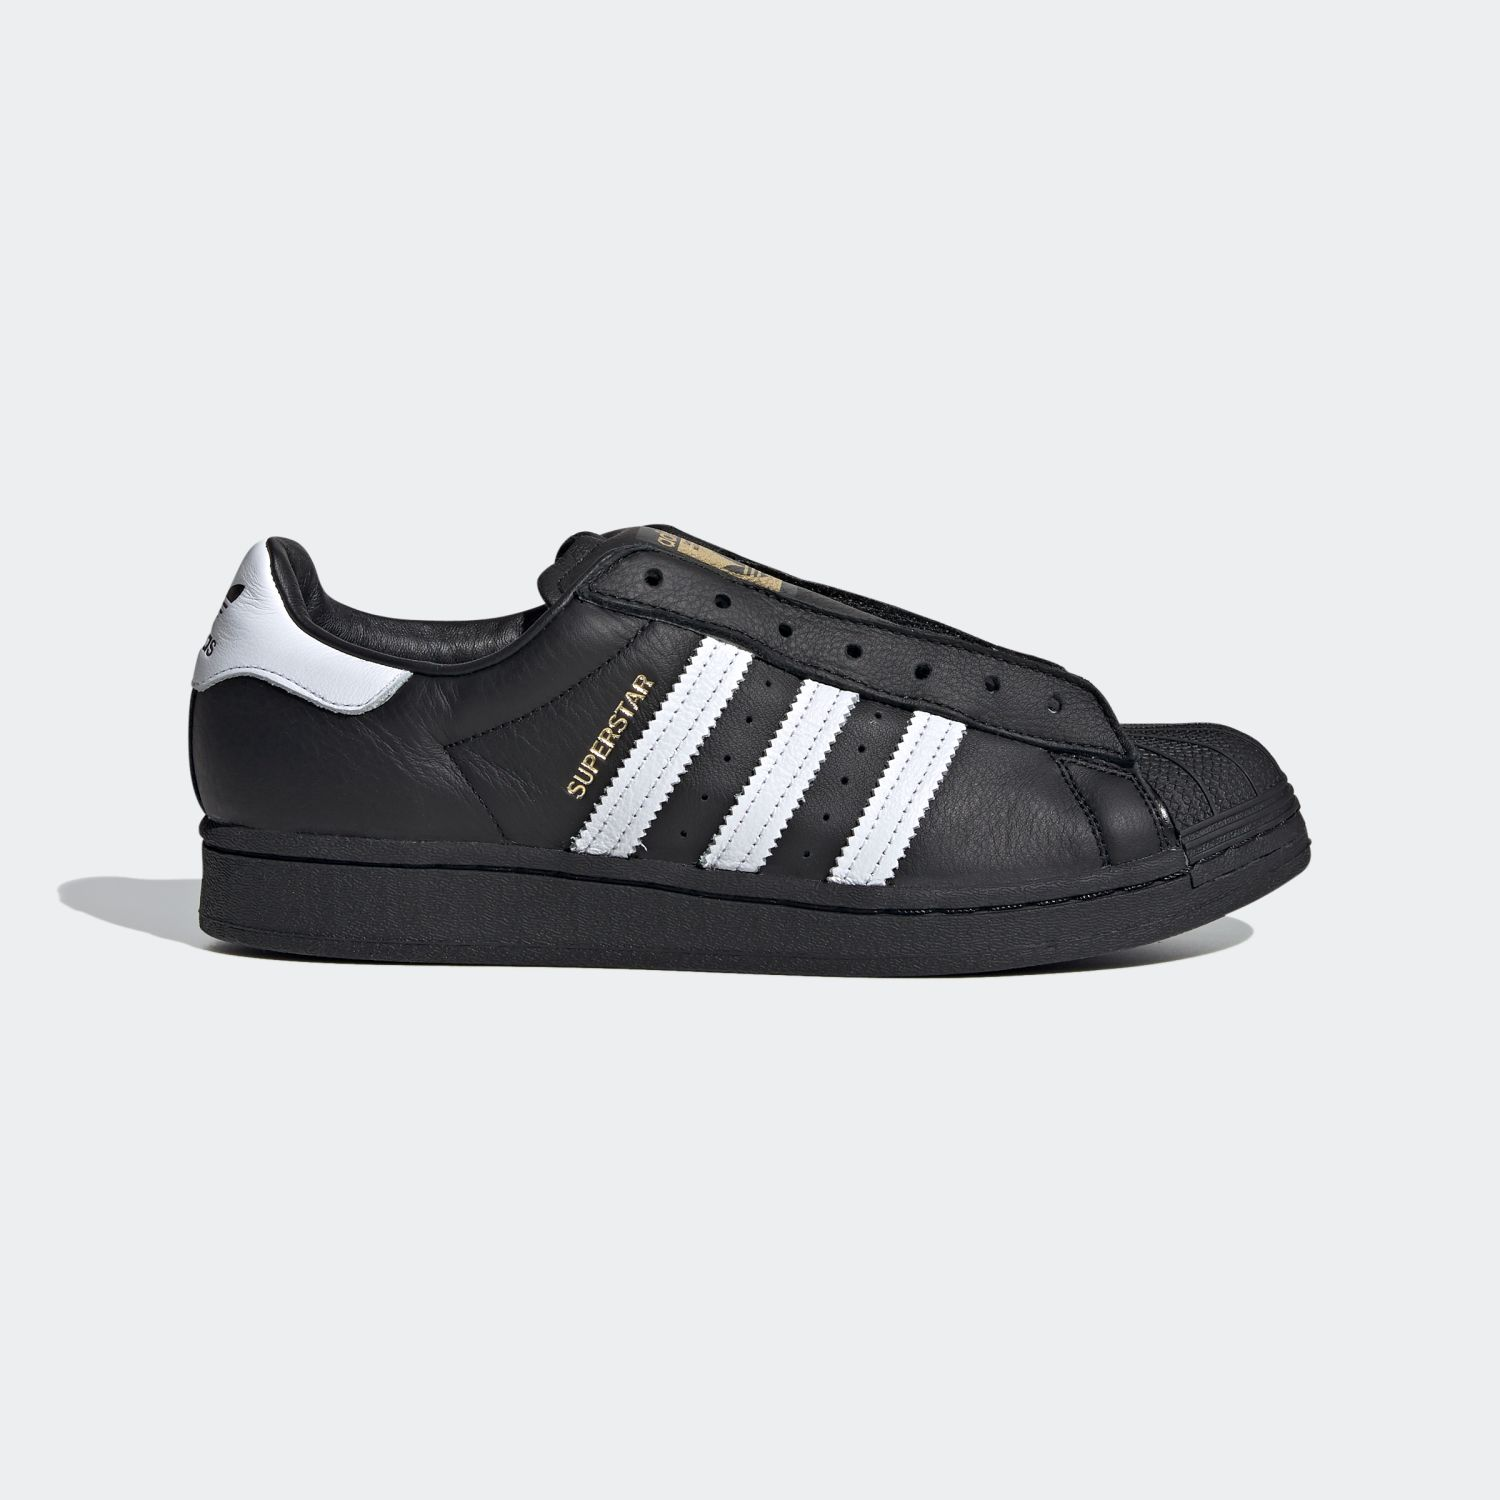 SUPERSTAR x Adidas Laceless Black White [1]